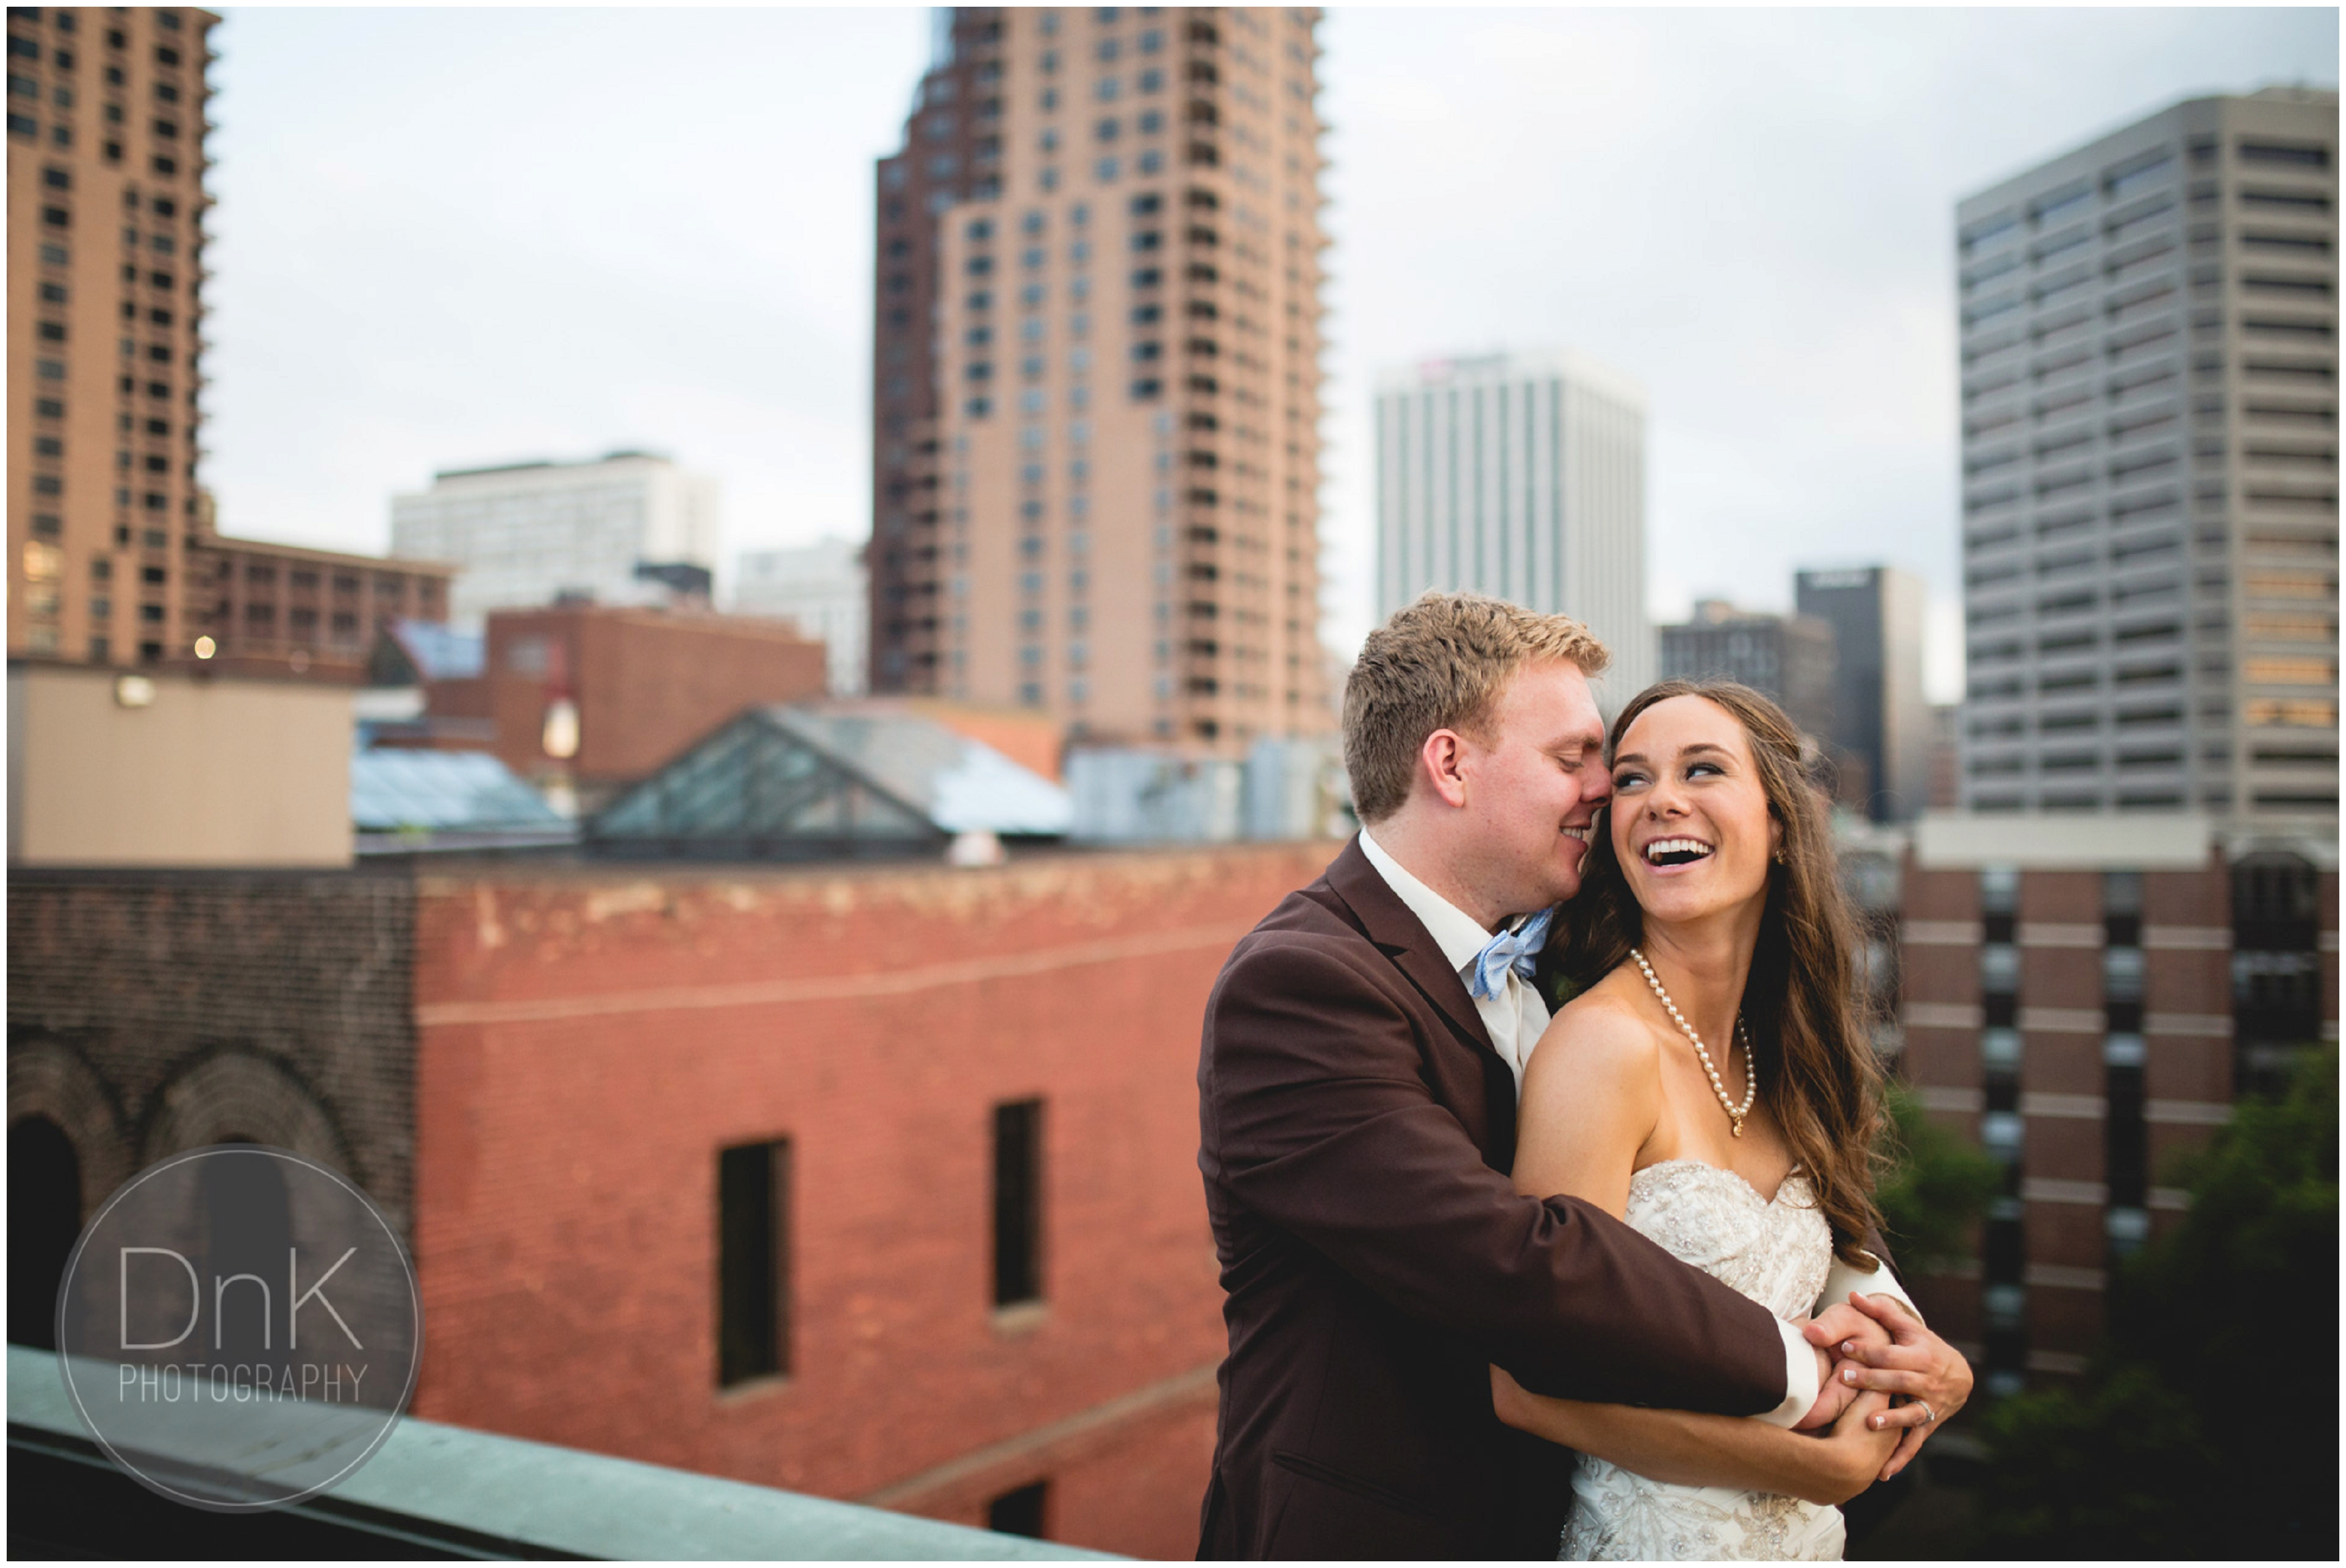 35 - 413 on Wacouta Wedding Pictures Rooftop Wedding Pictures DnK Photography